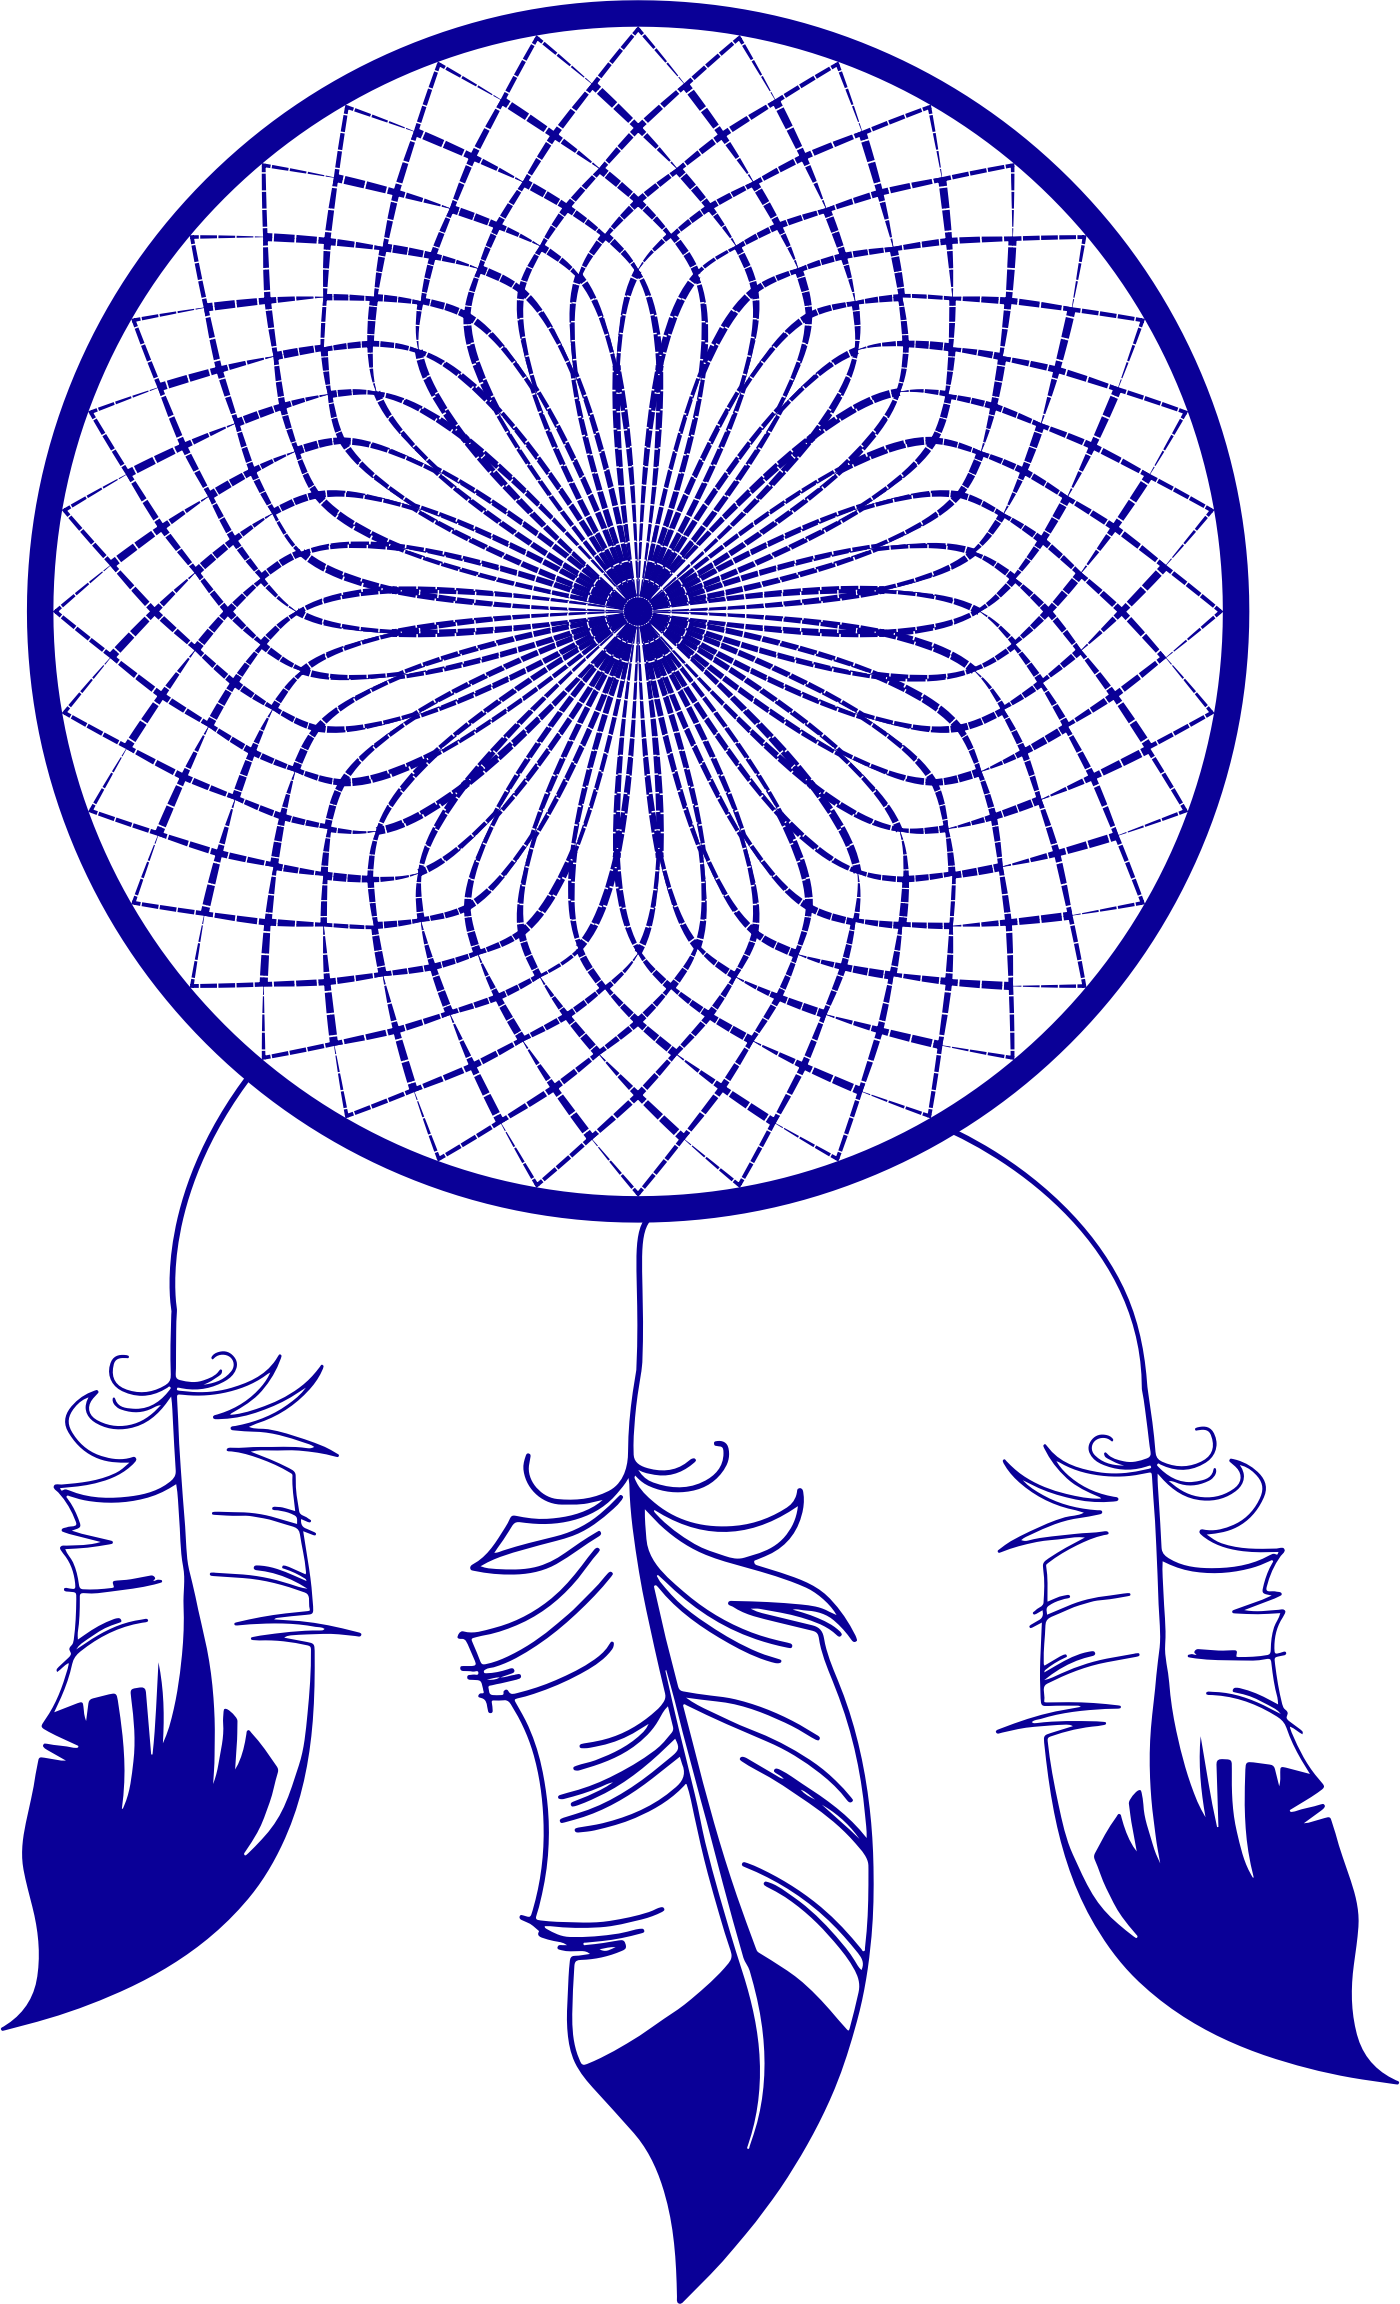 Dreamcatcher clipart jpeg. Free dream catcher cliparts